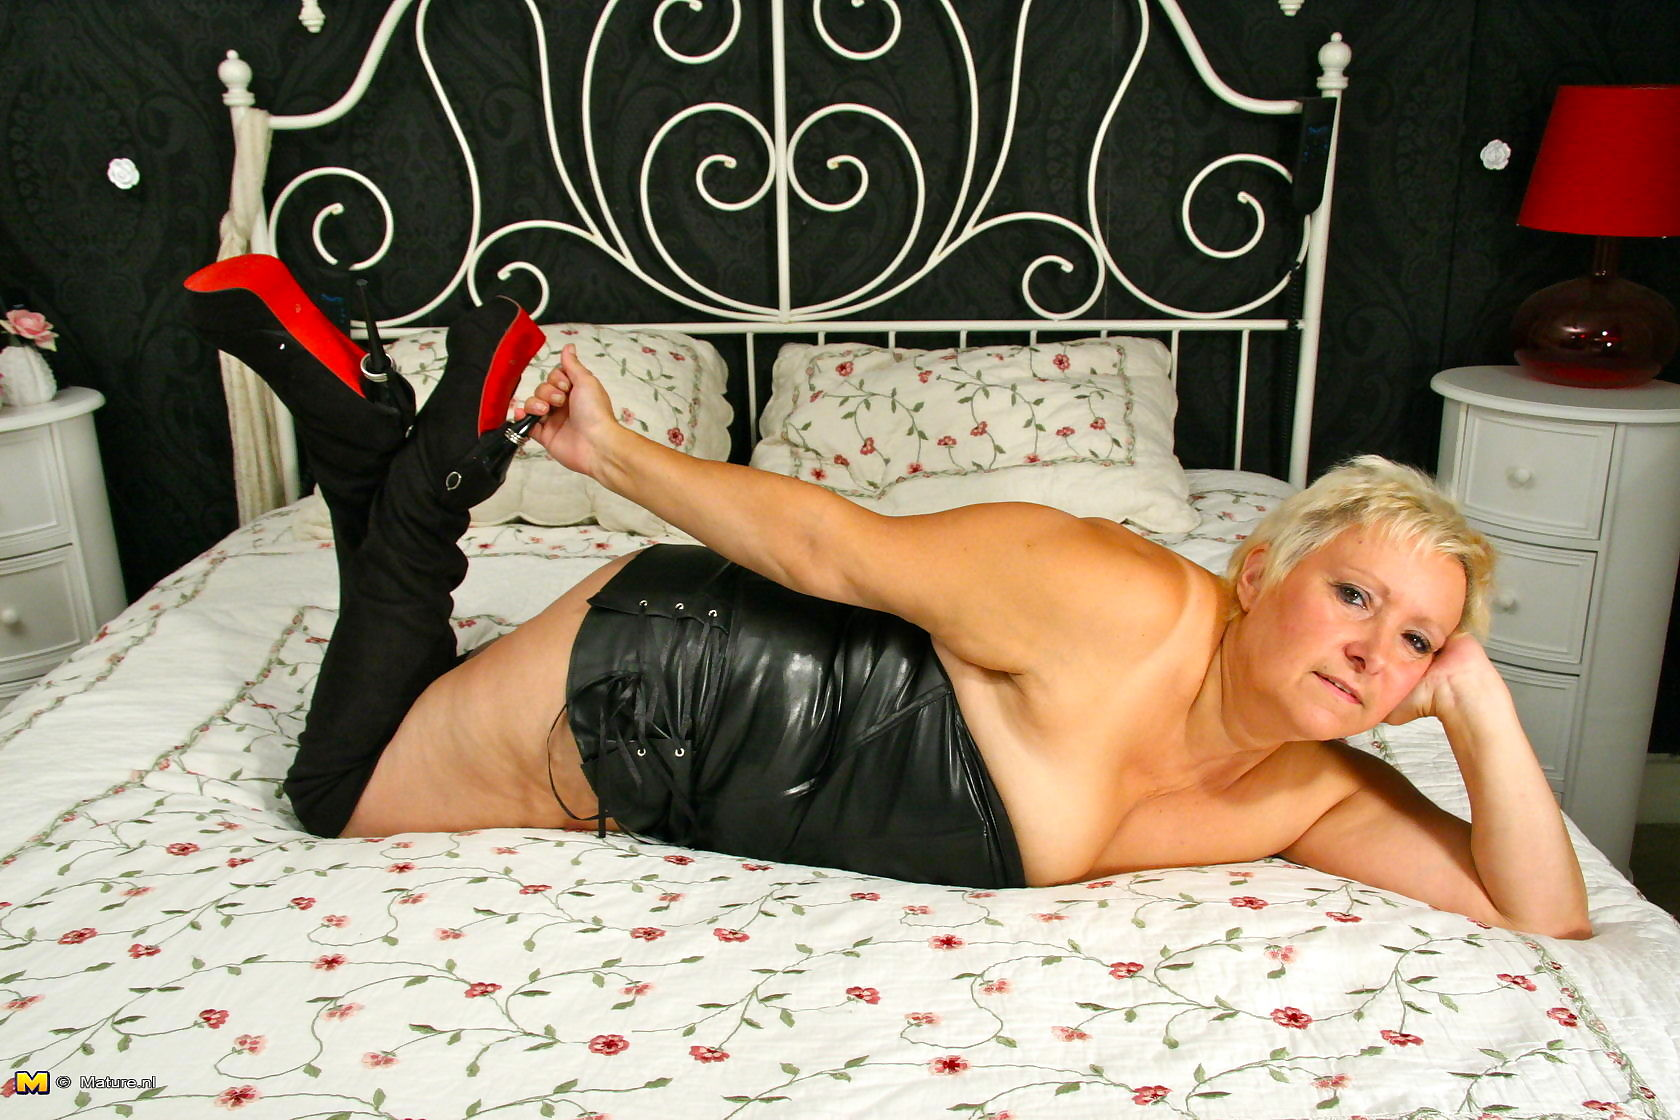 Chubby mature lady feeling a bit naughty - part 3323